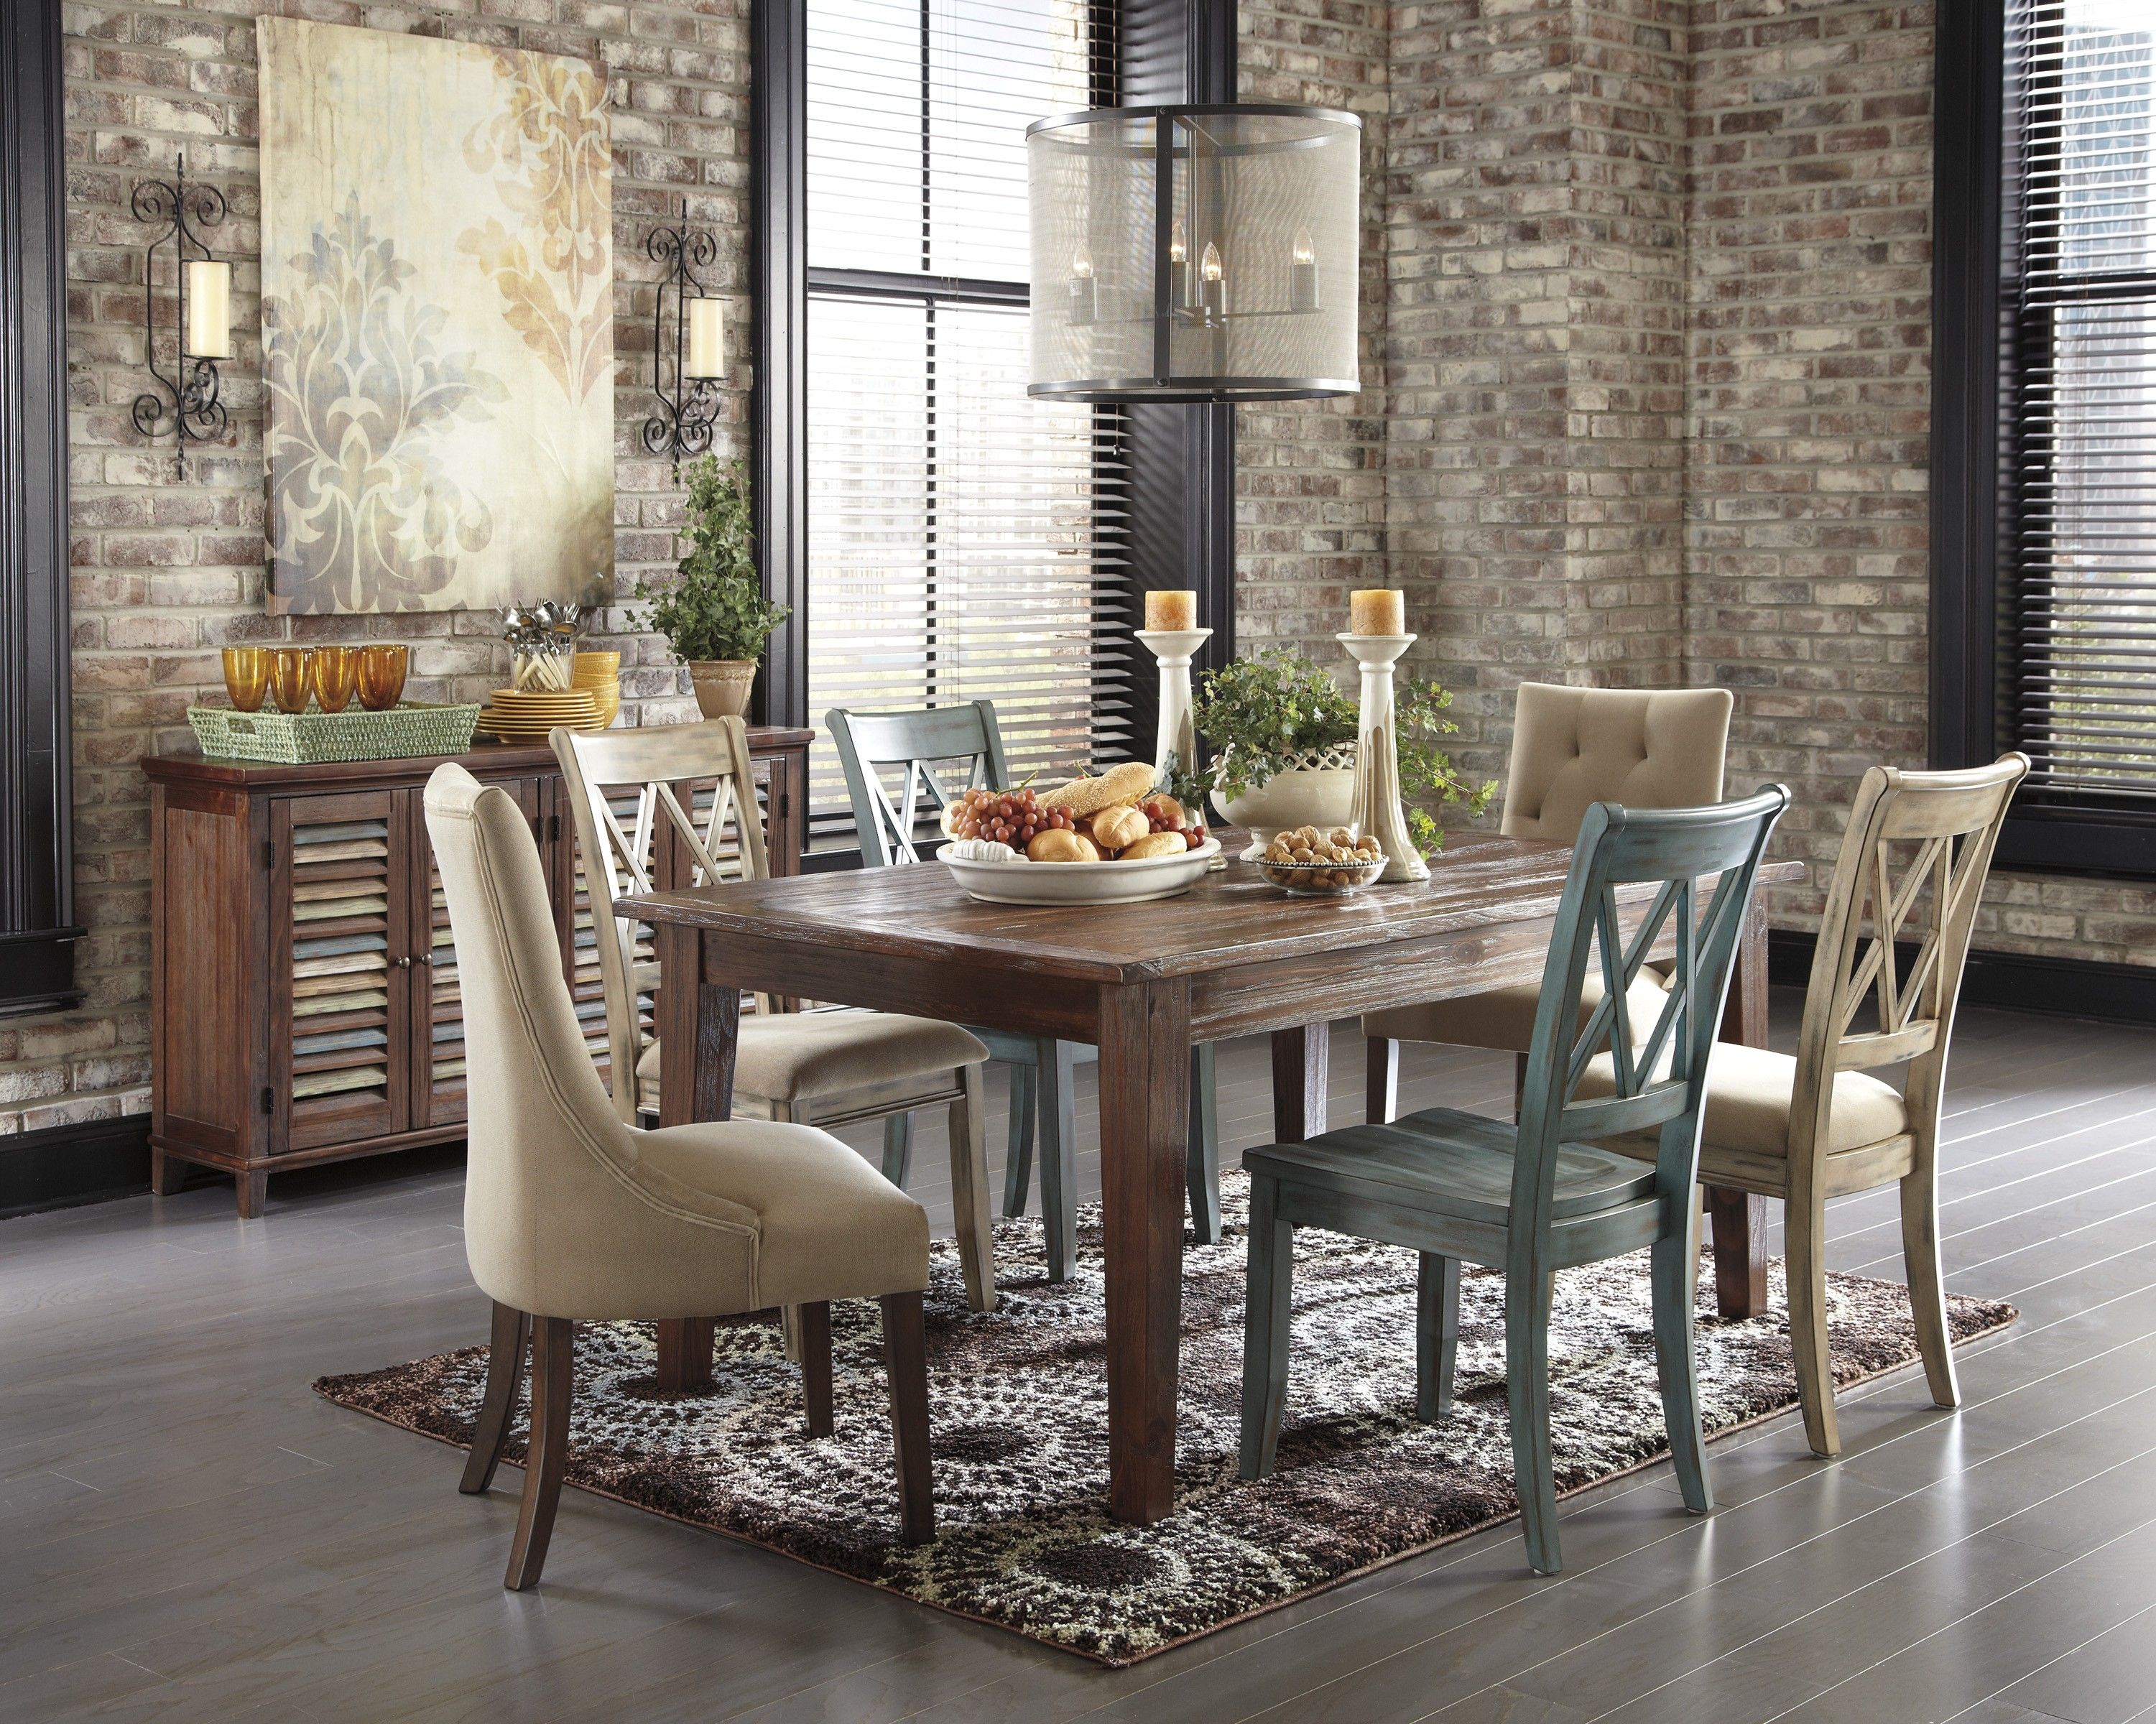 Dining Room Rustic Wooden Dining Chairs And